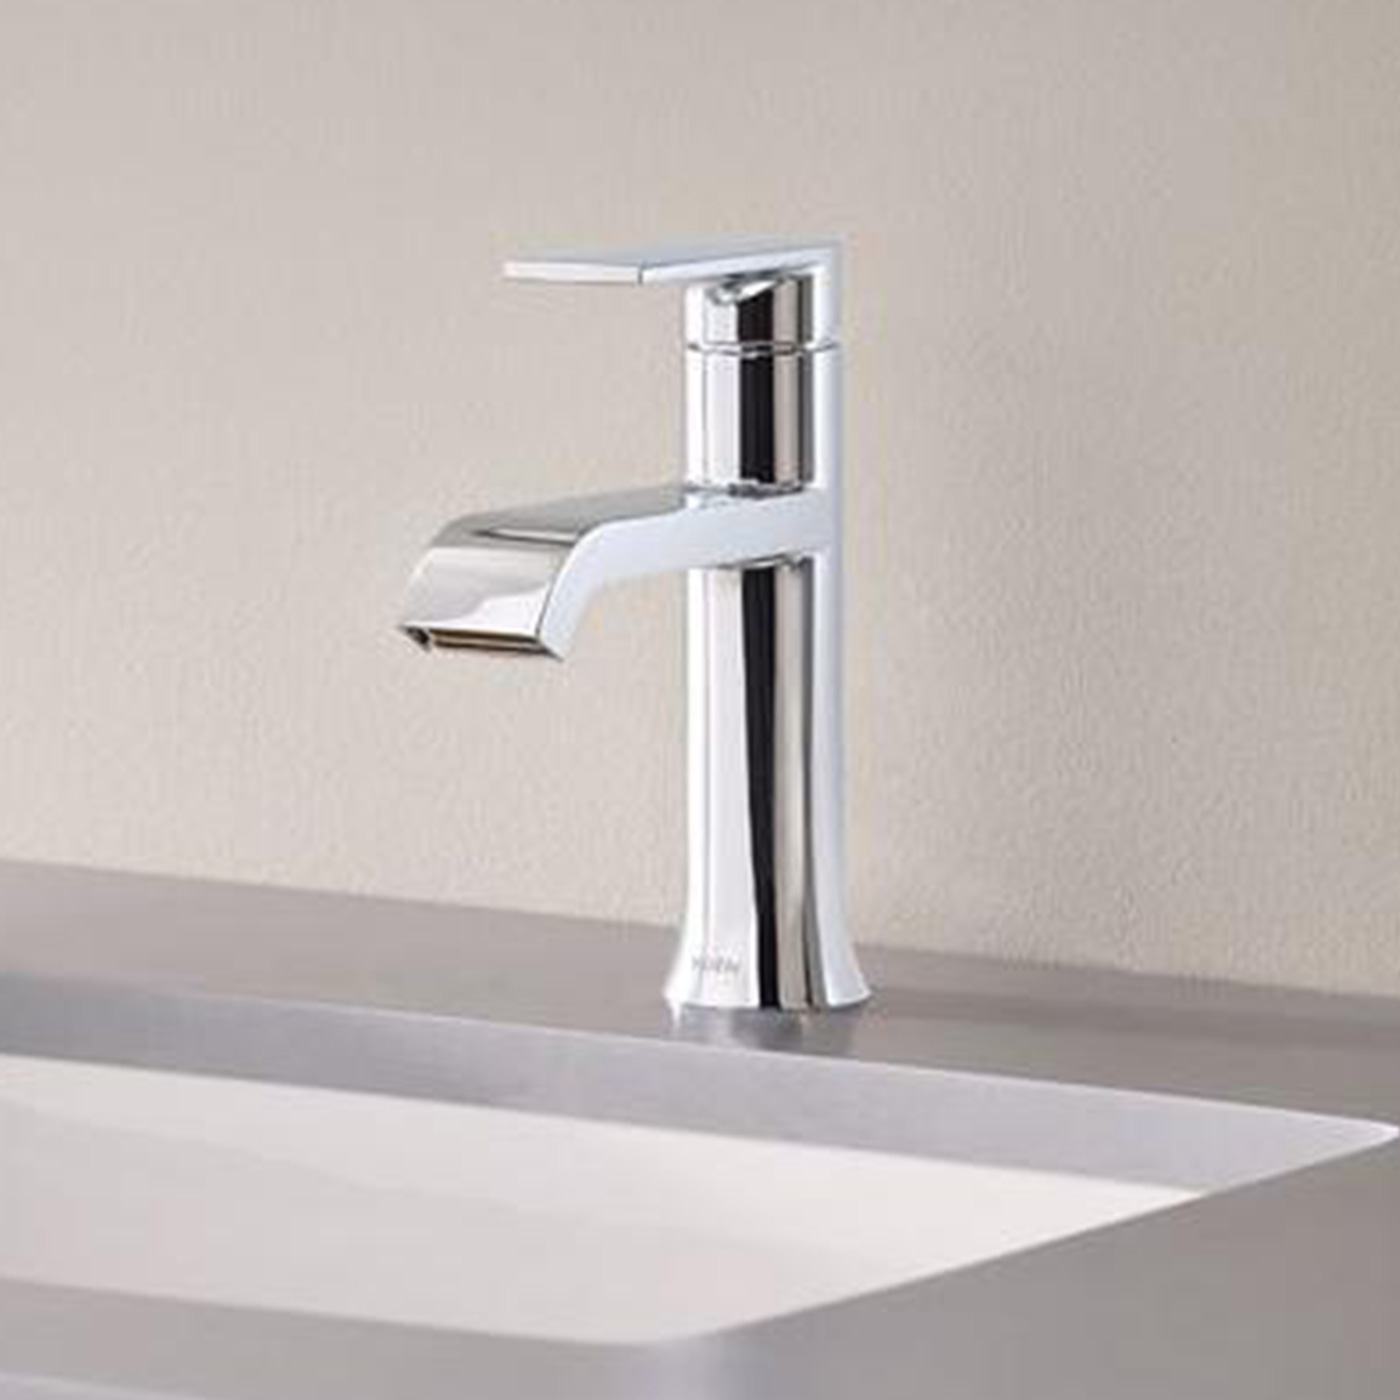 Discount Bathroom Faucets Wholesale Faucets weismanhomeoutlets.com Bathroom Remodeling